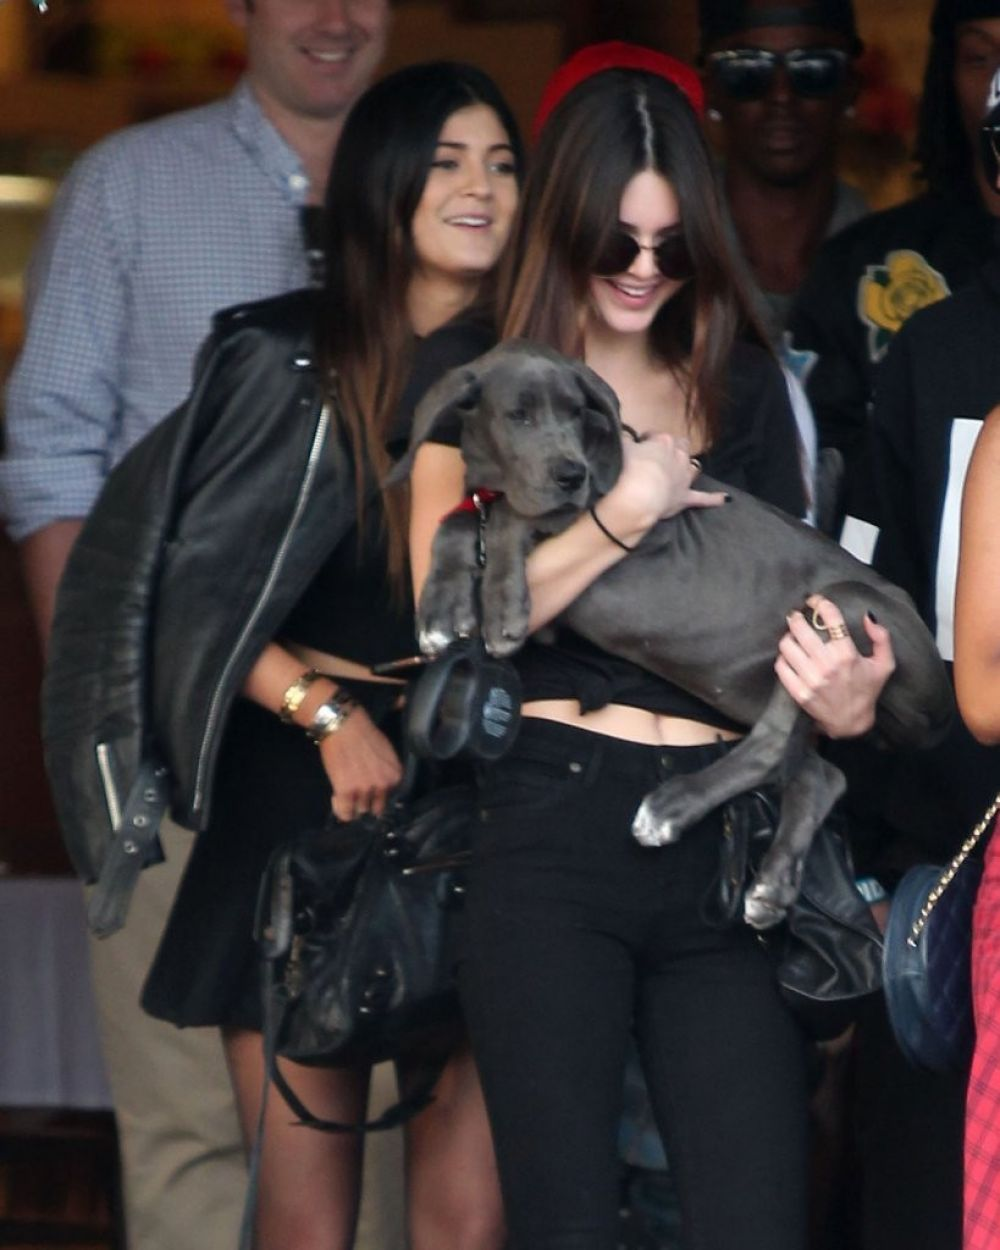 39feae1cd35e2 Kendall & Kylie Jenner Shopping At Fred Segal In West Hollywood ...